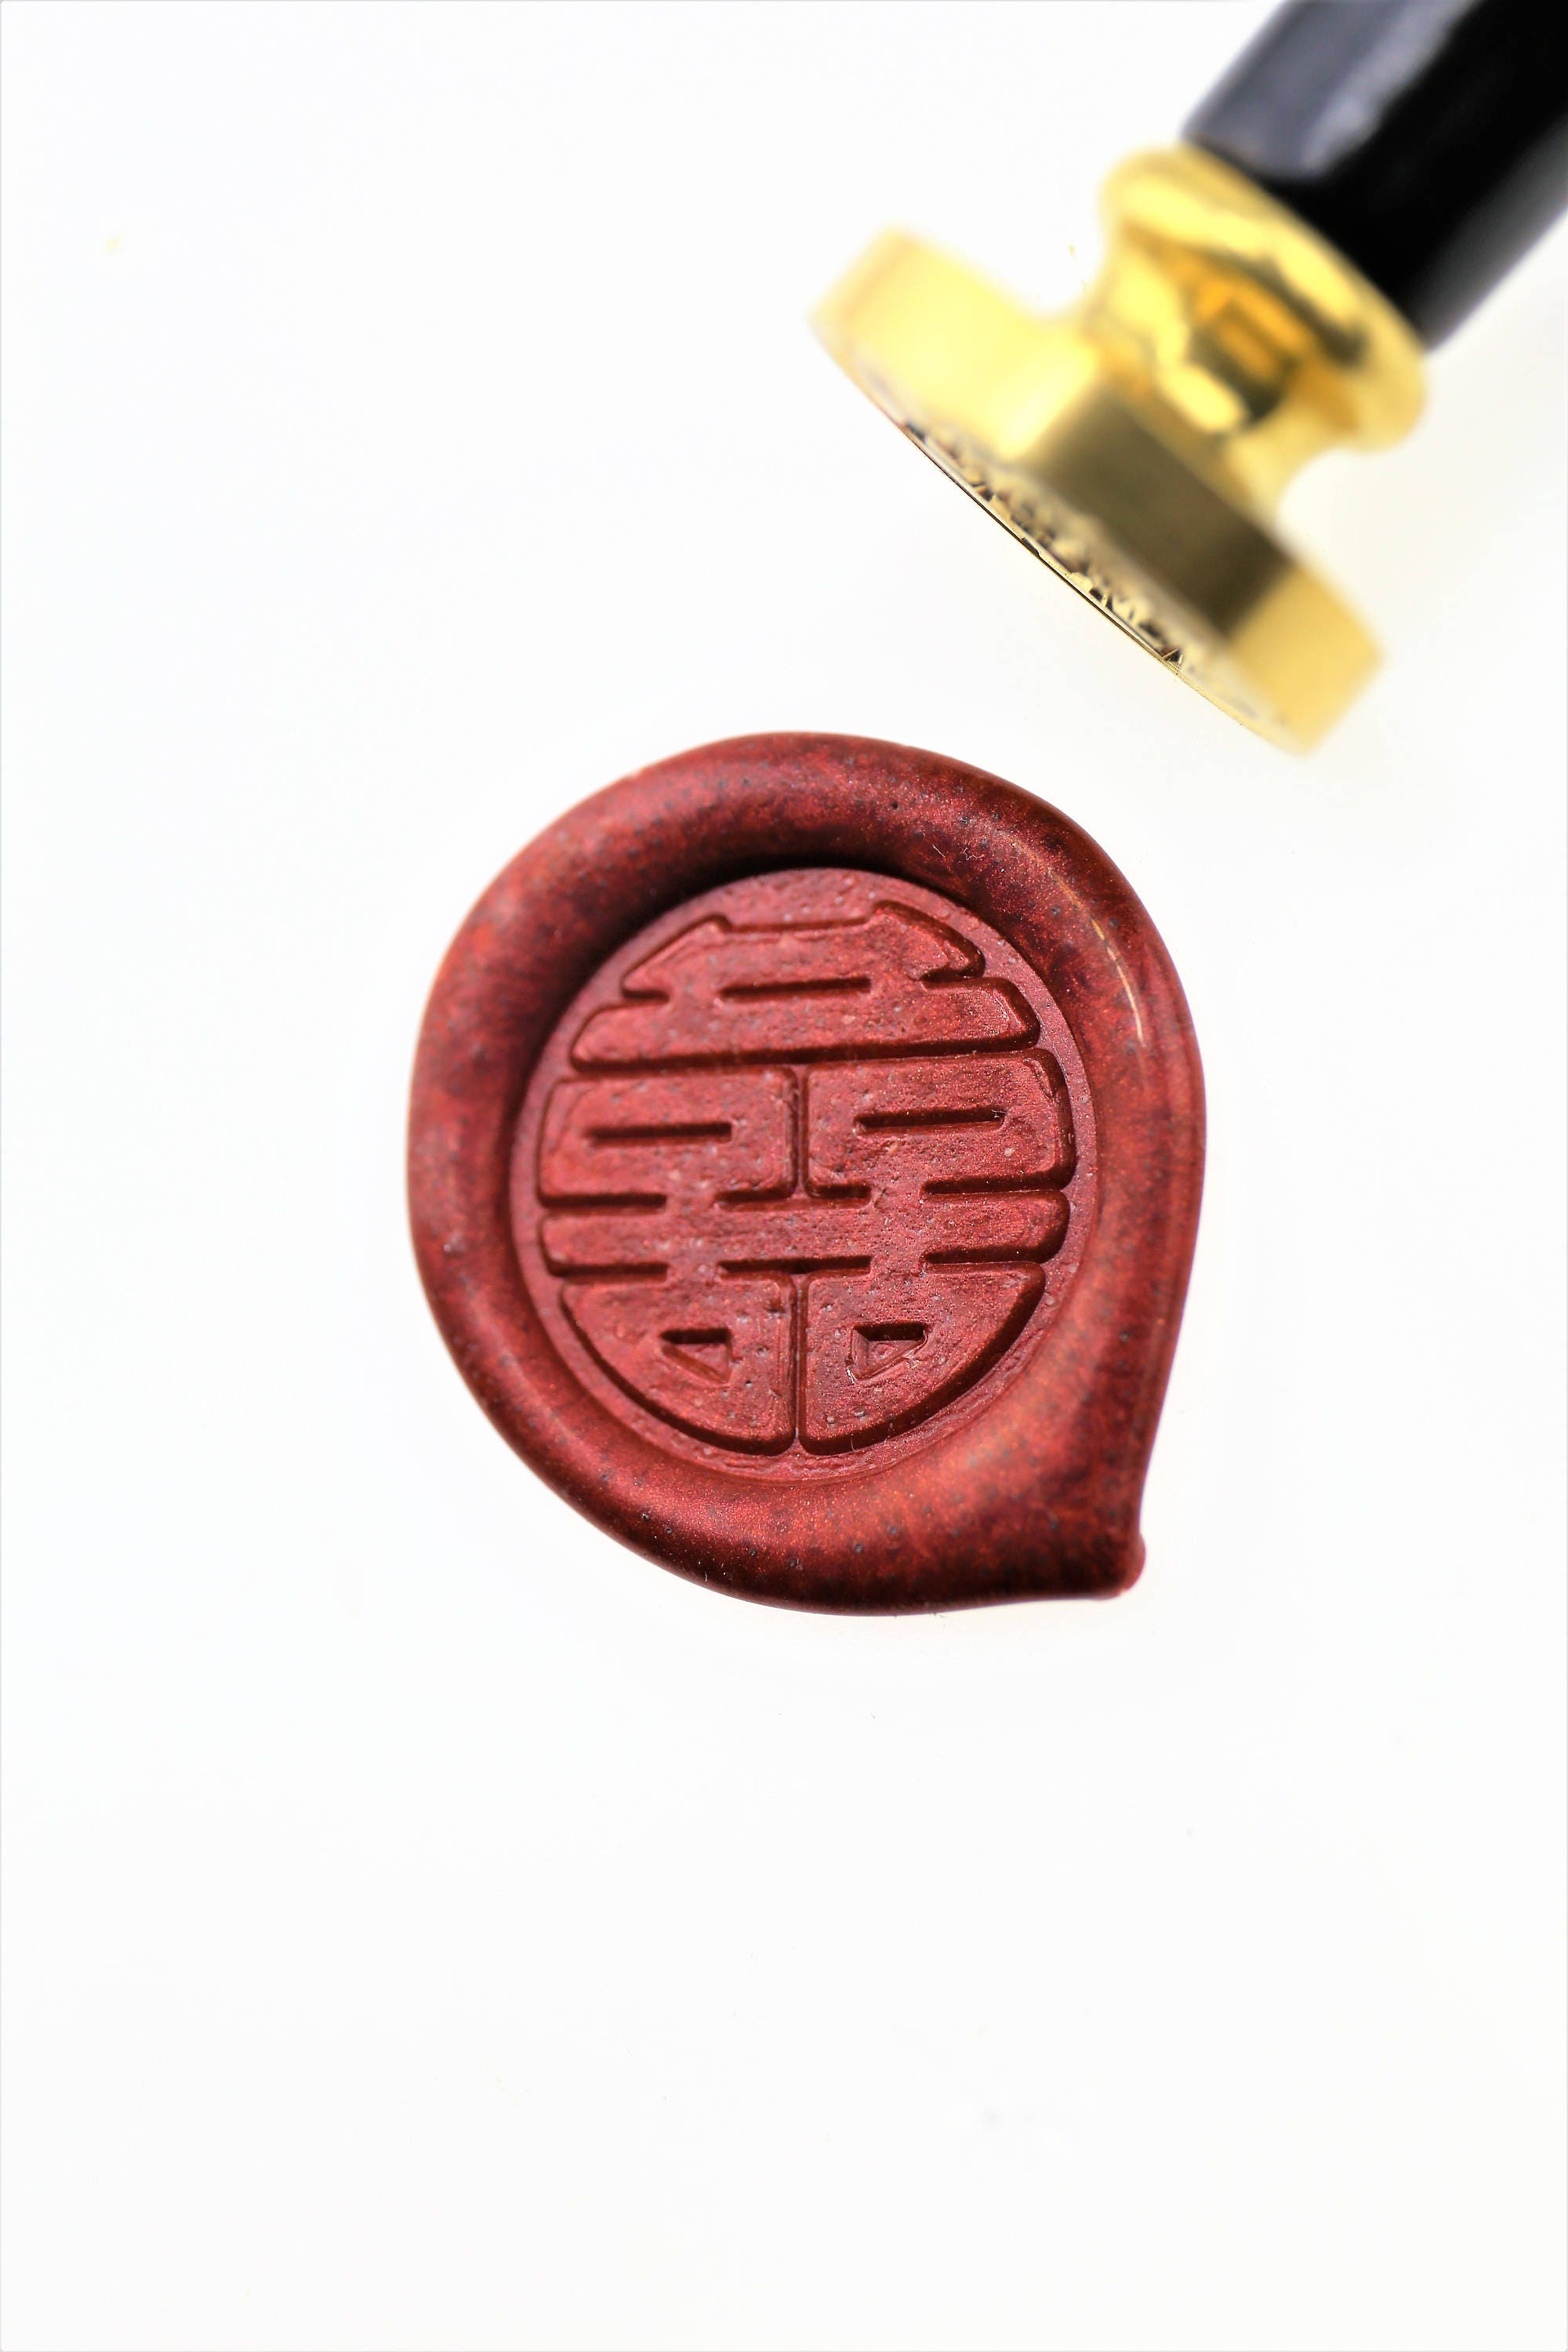 Double Happiness Wax Seal Stamp/Chinese Wedding invitation | Etsy